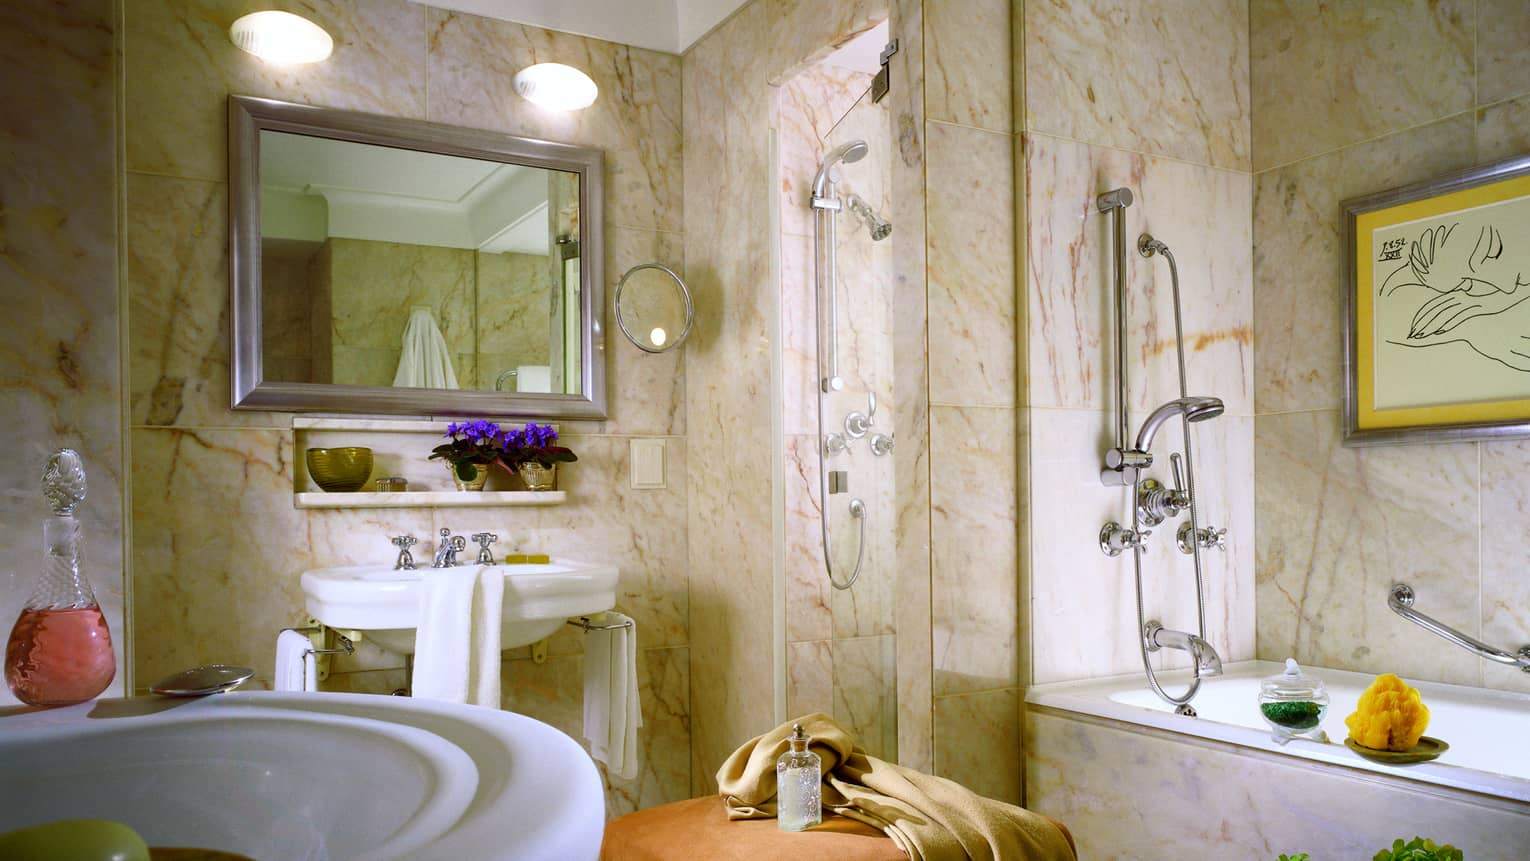 Sunny white-and-beige marble bathroom with large round sinks, bathtub and two showers